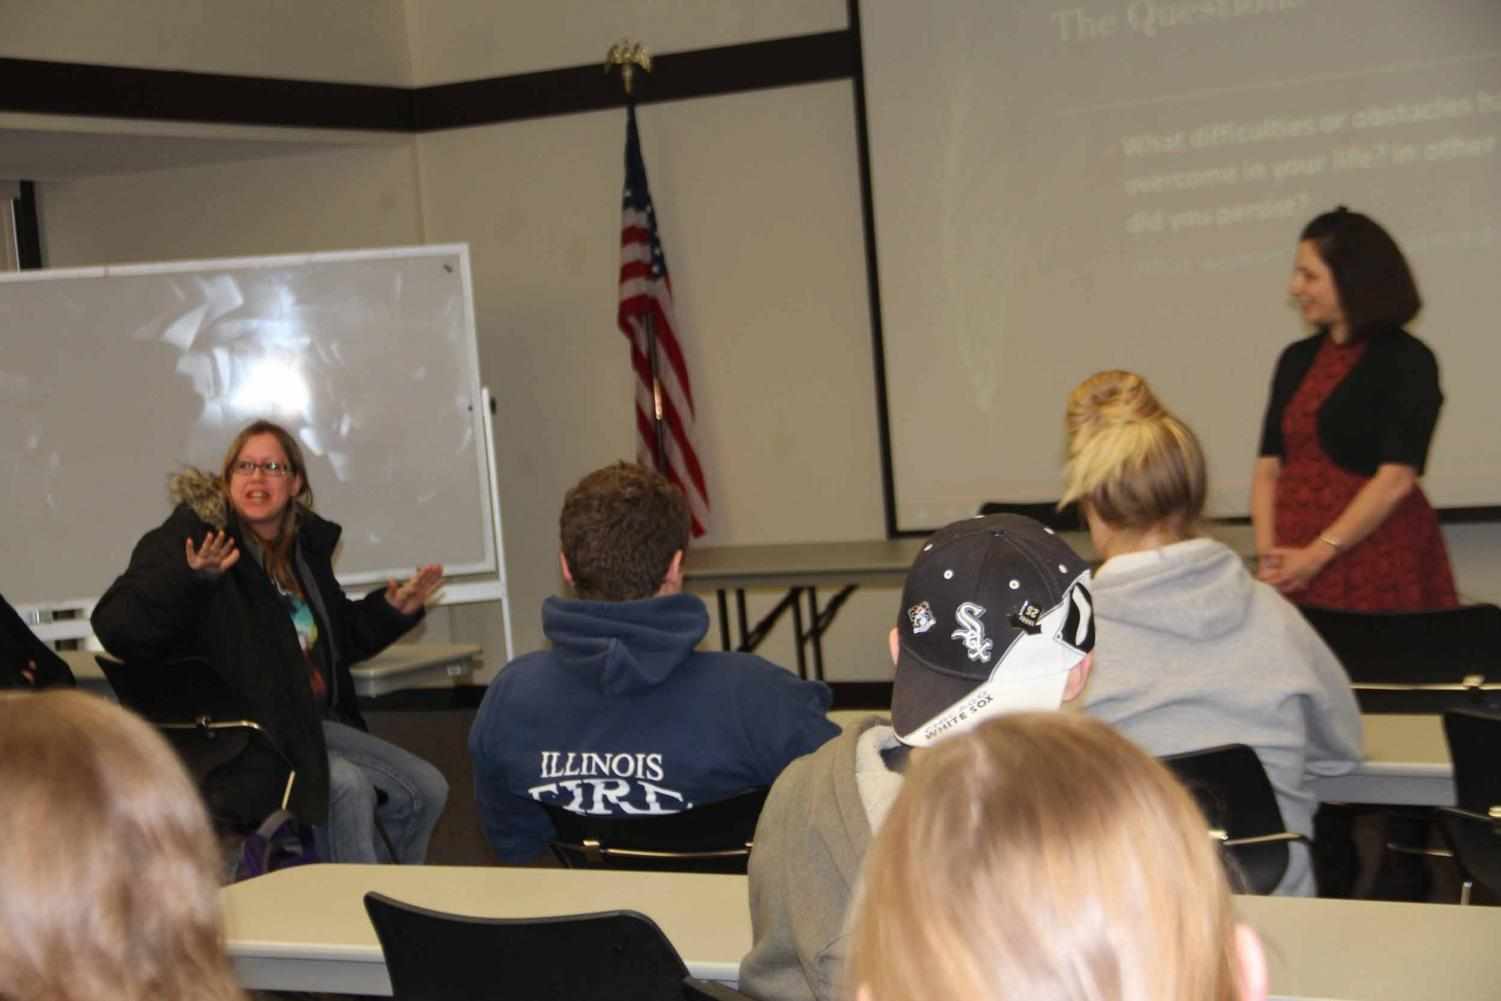 A student gives her experiences as a woman at IVCC during English instructor Nora Villarreal's presentation.